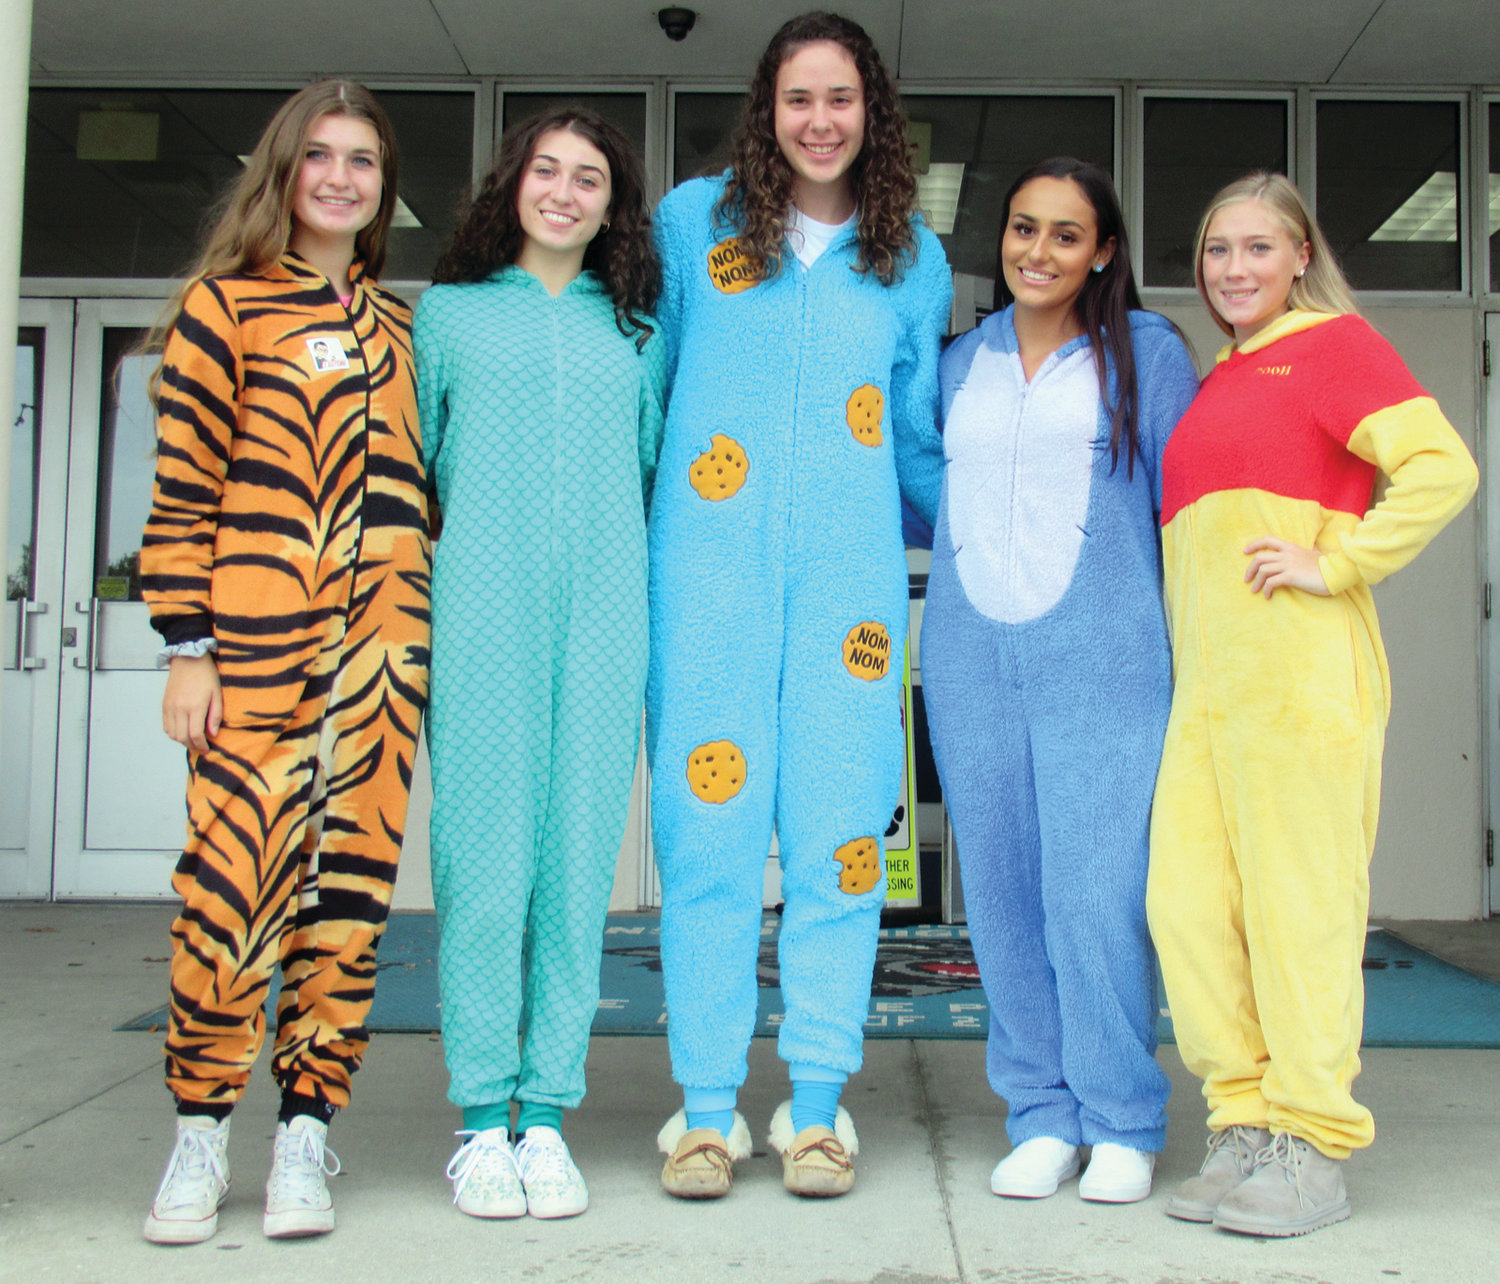 CLASSIC COURT: The 2019 Homecoming Queen candidates at Johnston High School are, from left, Delaney LaRose, Mia Ragosta, Meghan Philbrick, Natalia Soares and Lauren Campagnone.